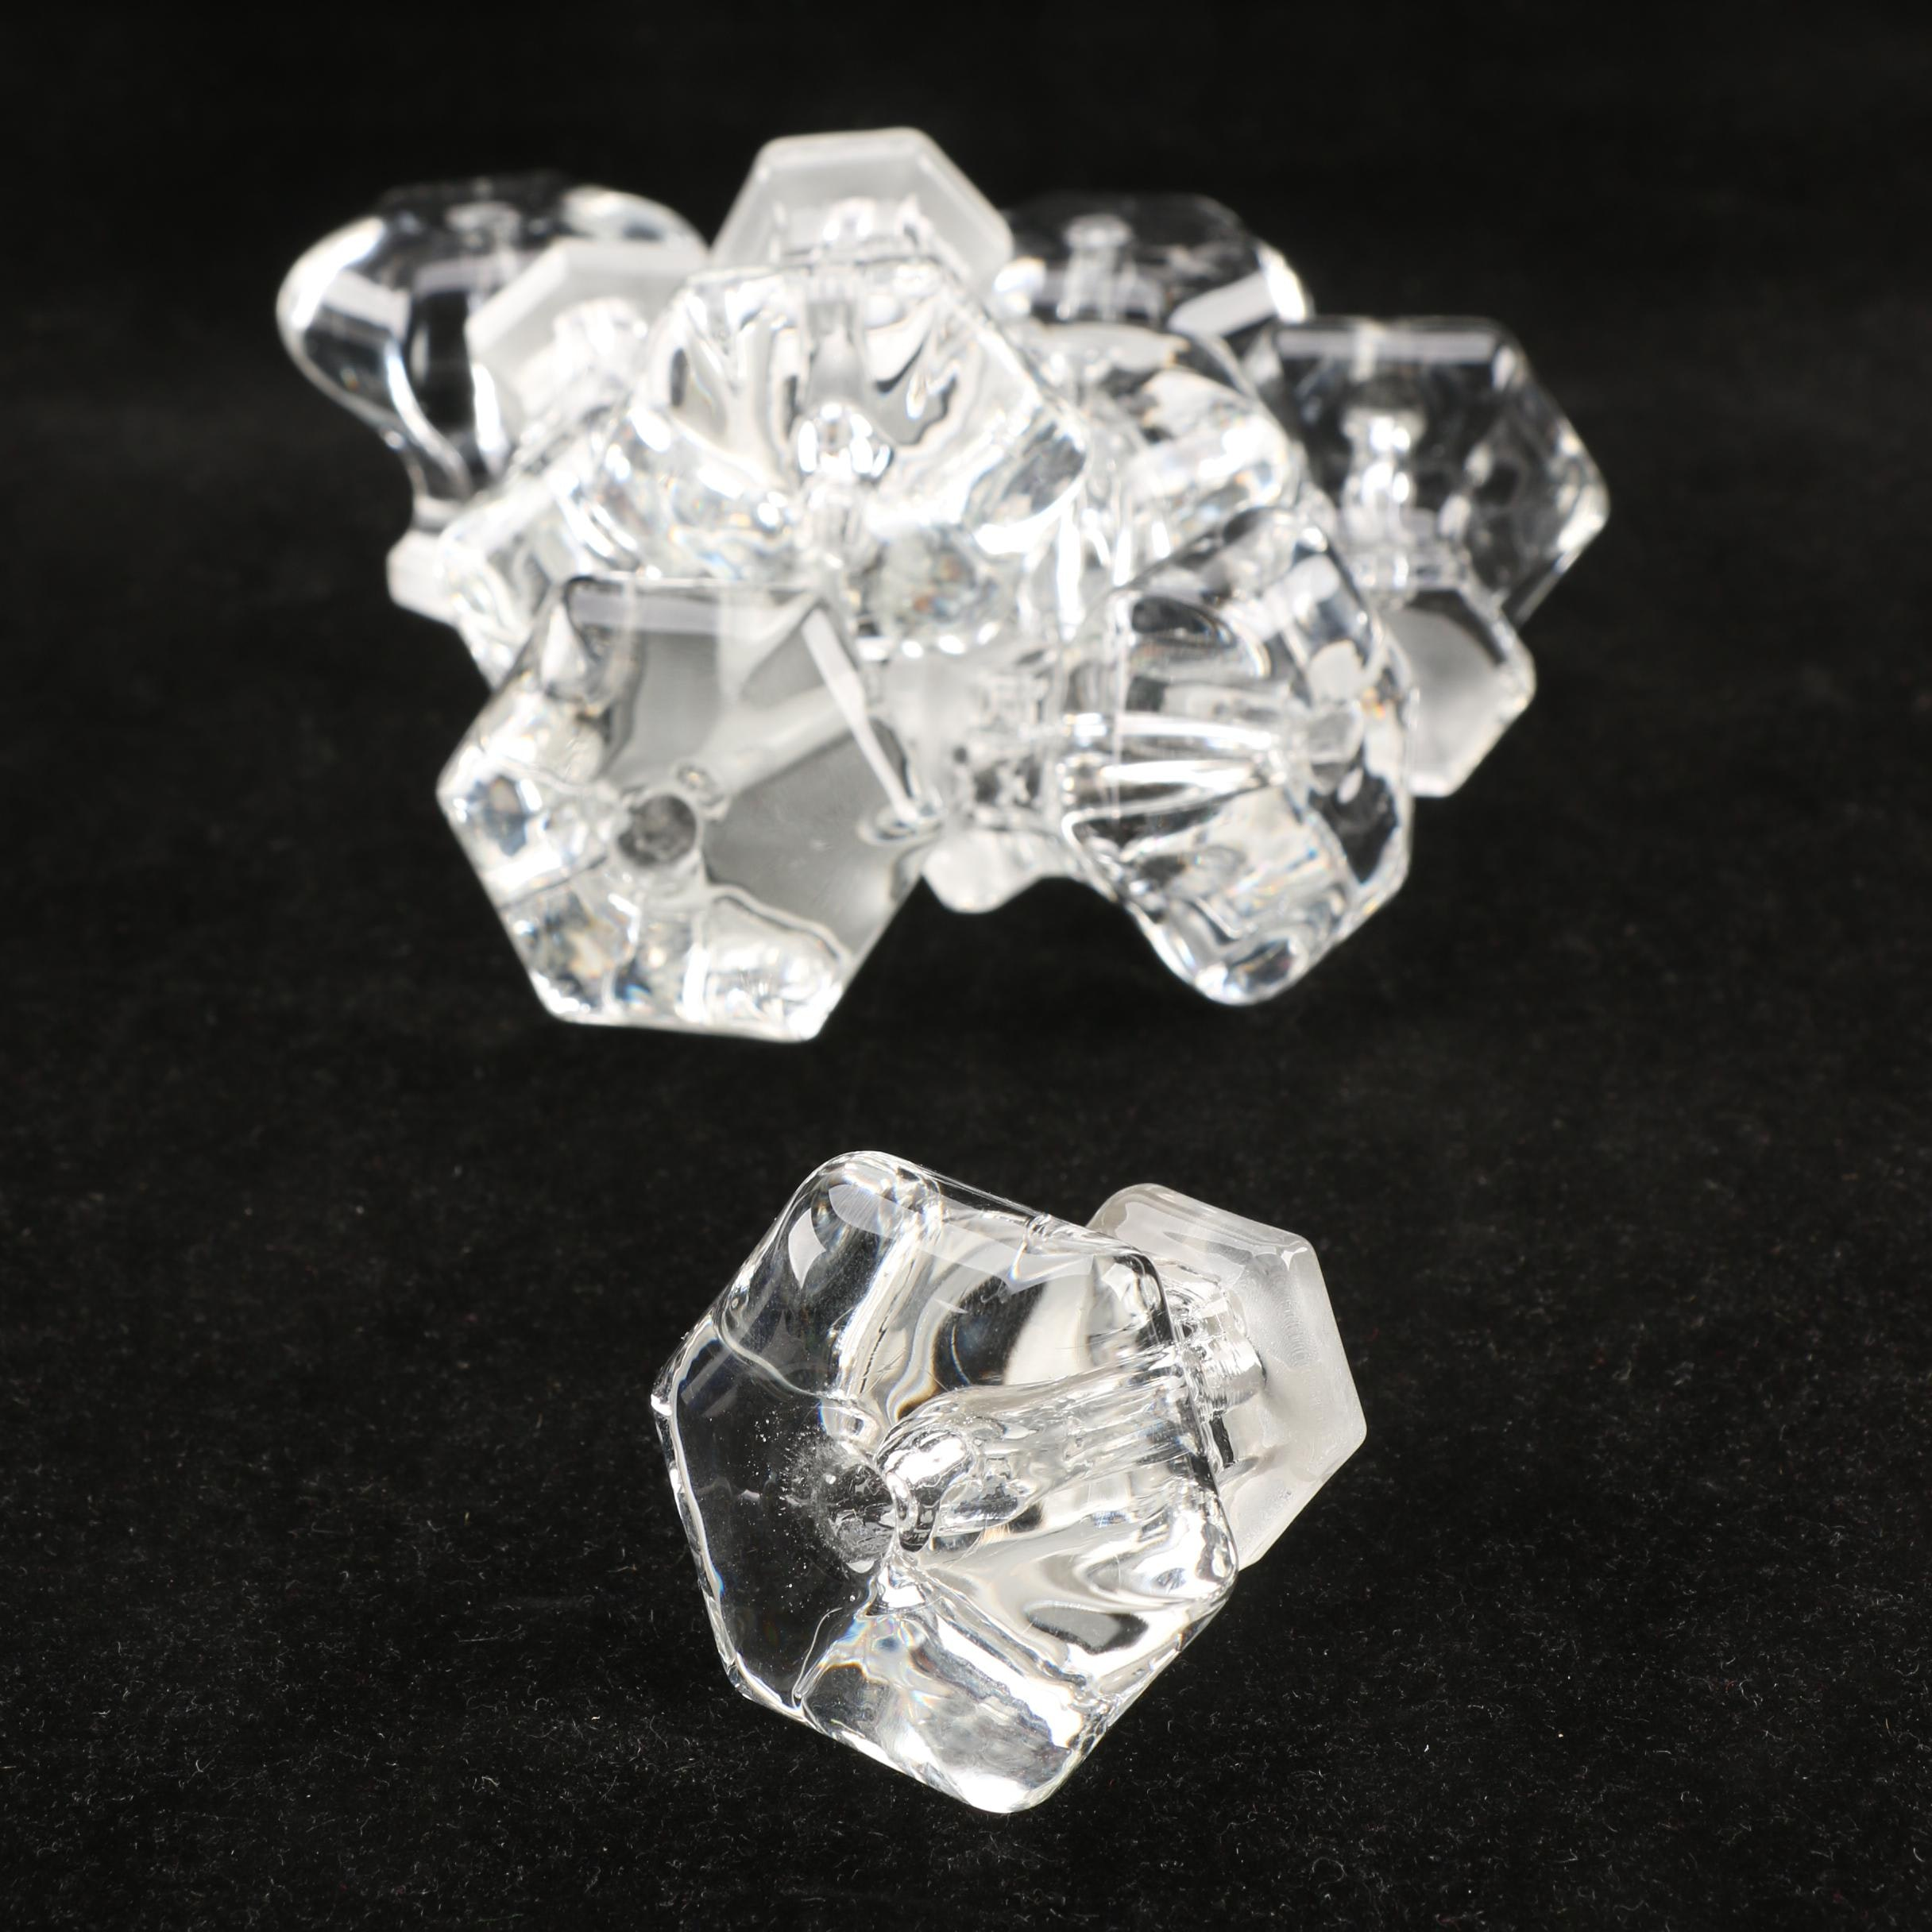 Collection of Glass Cabinet Knobs